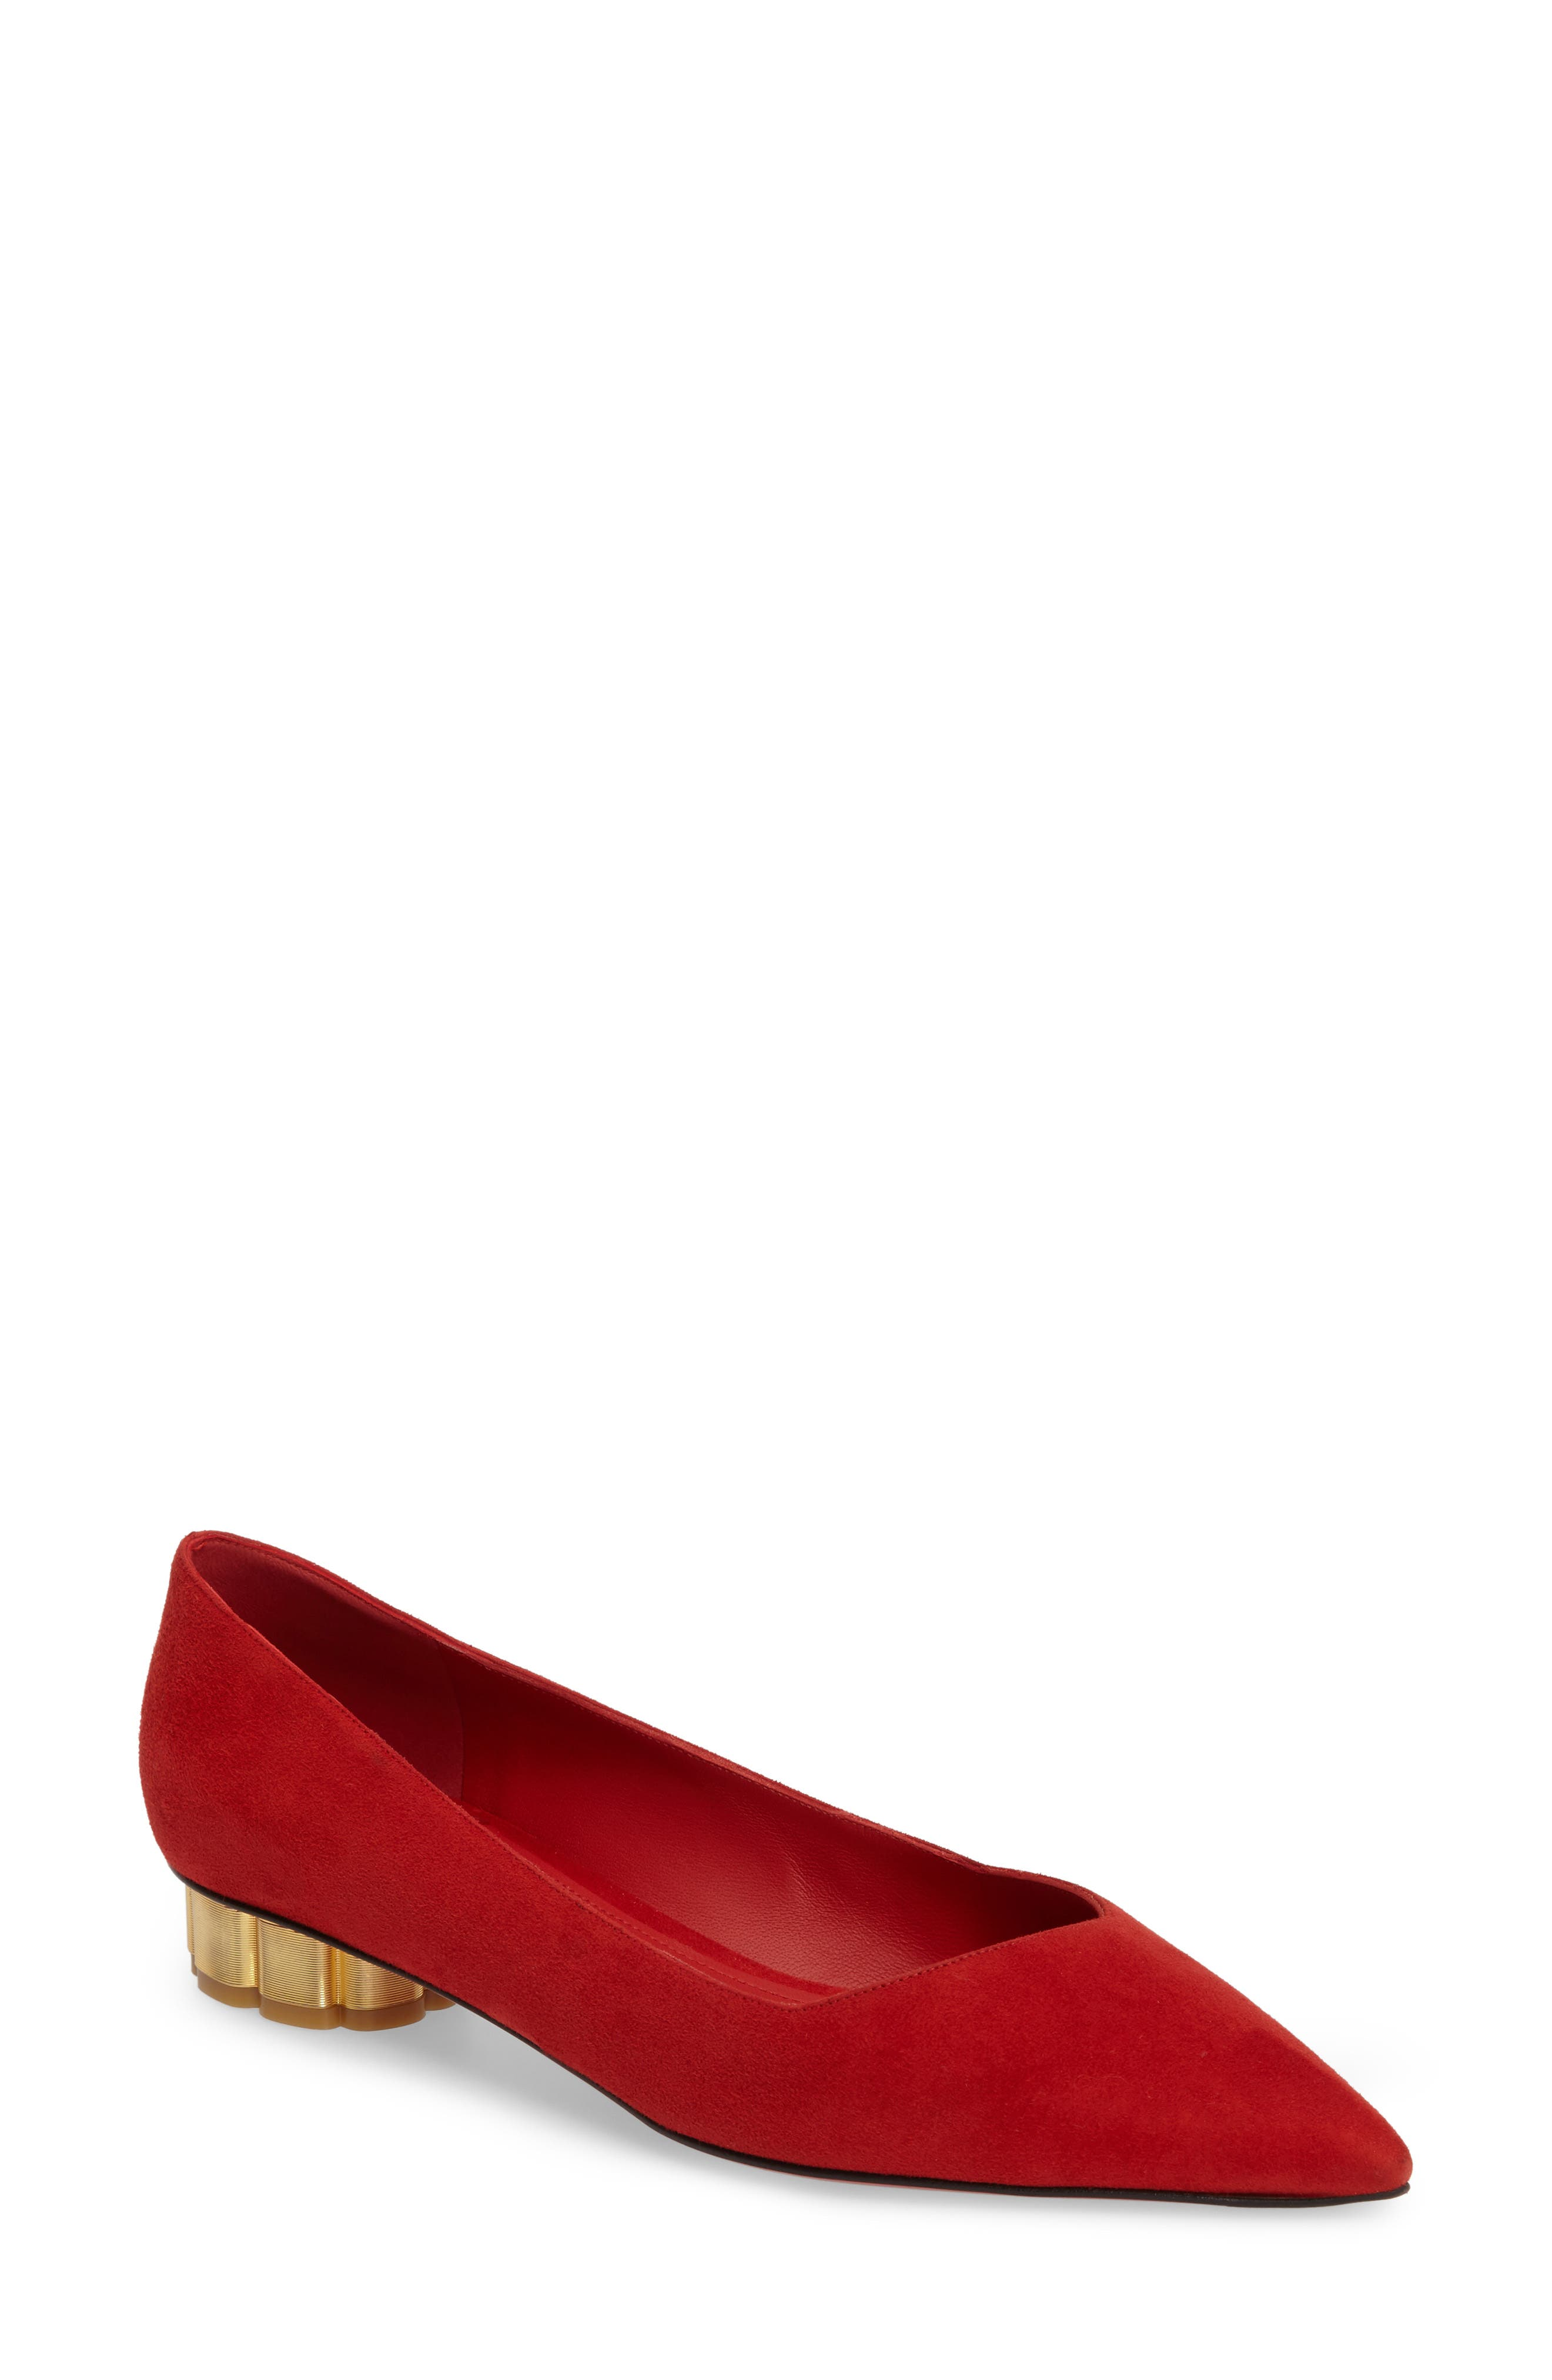 Flower Heel Pump,                             Main thumbnail 1, color,                             Red Suede